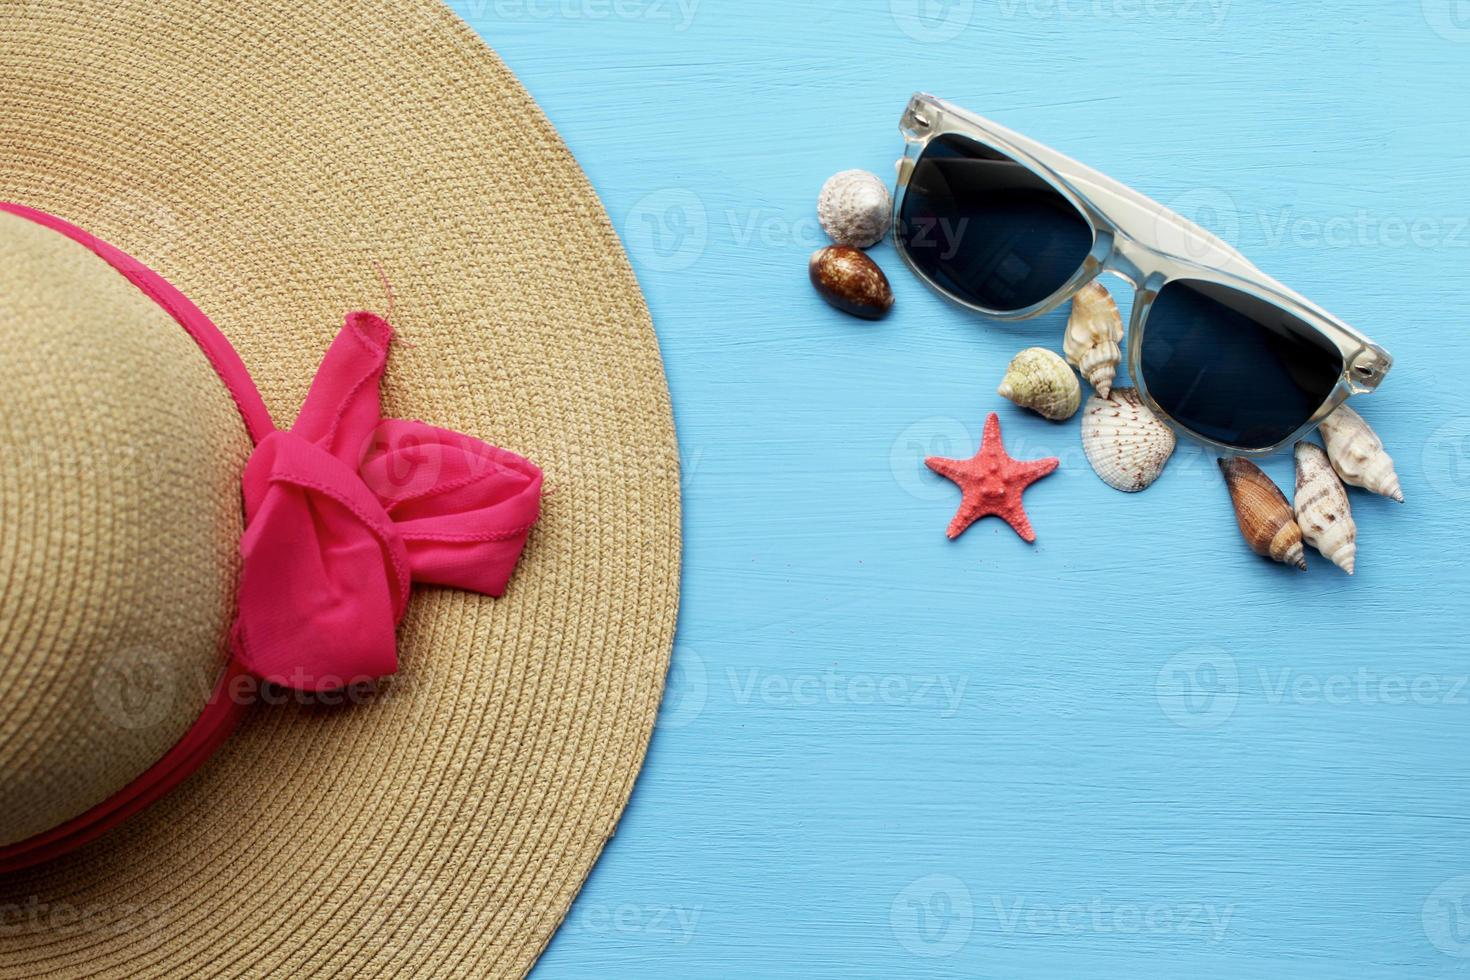 Hat and sunglasses - summertime fashion photo